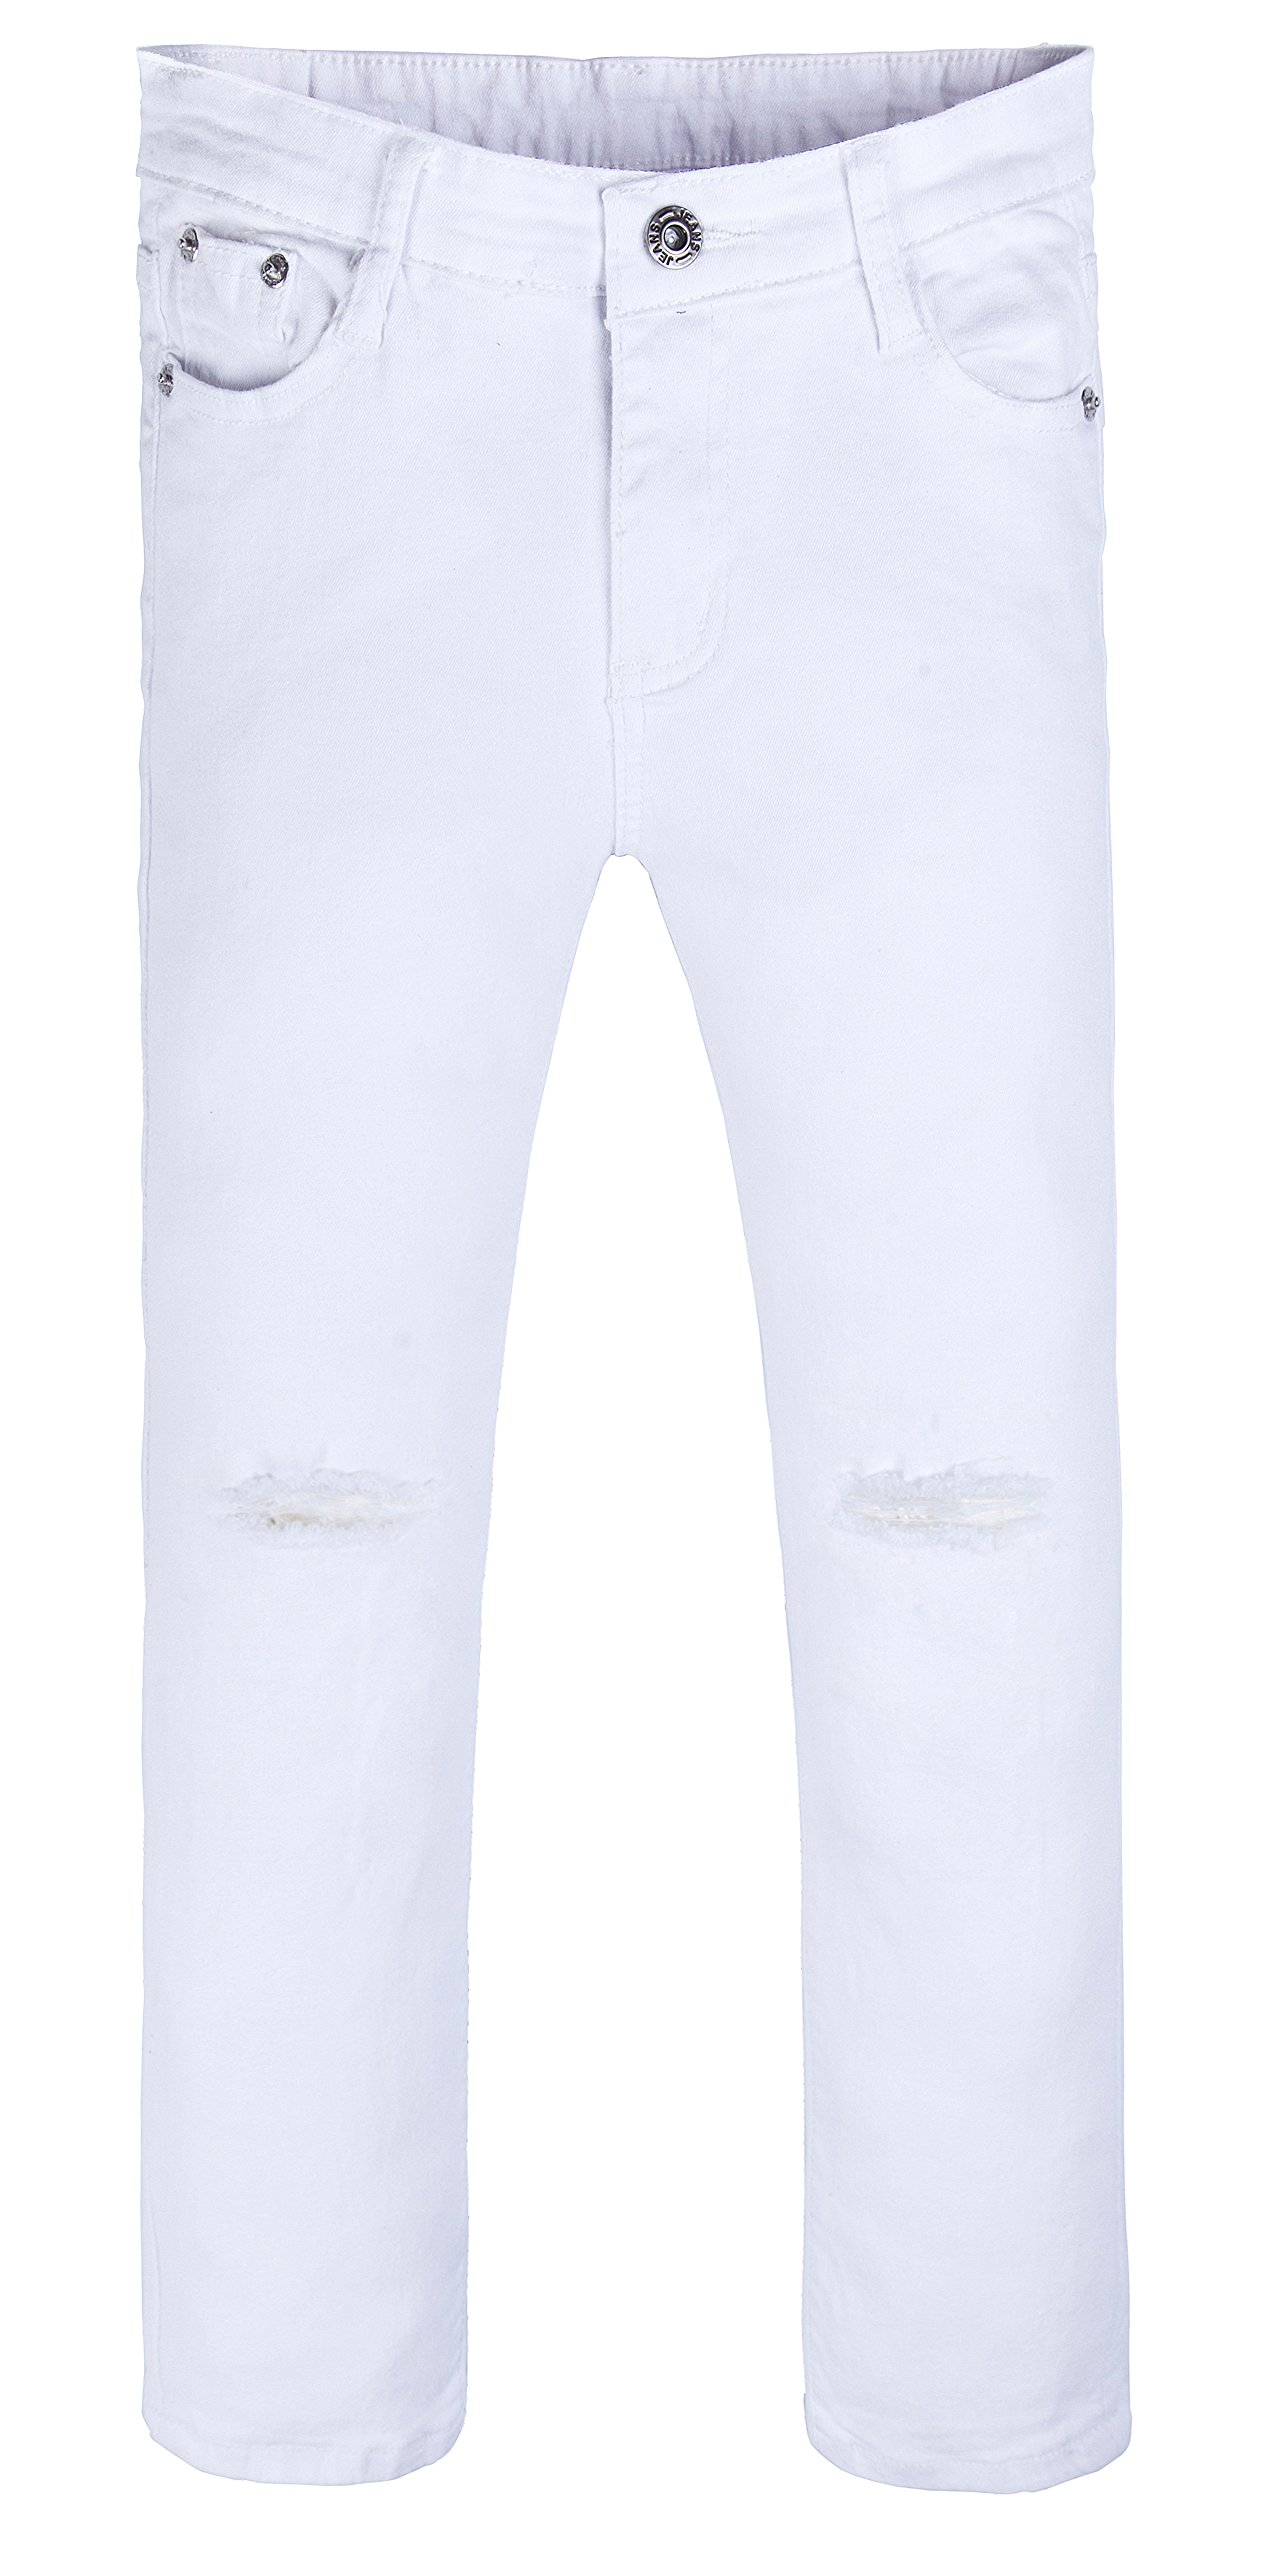 Girls Fashion Skinny Fit Jeans Distressed Ripped Hole Denim Pants White 12t